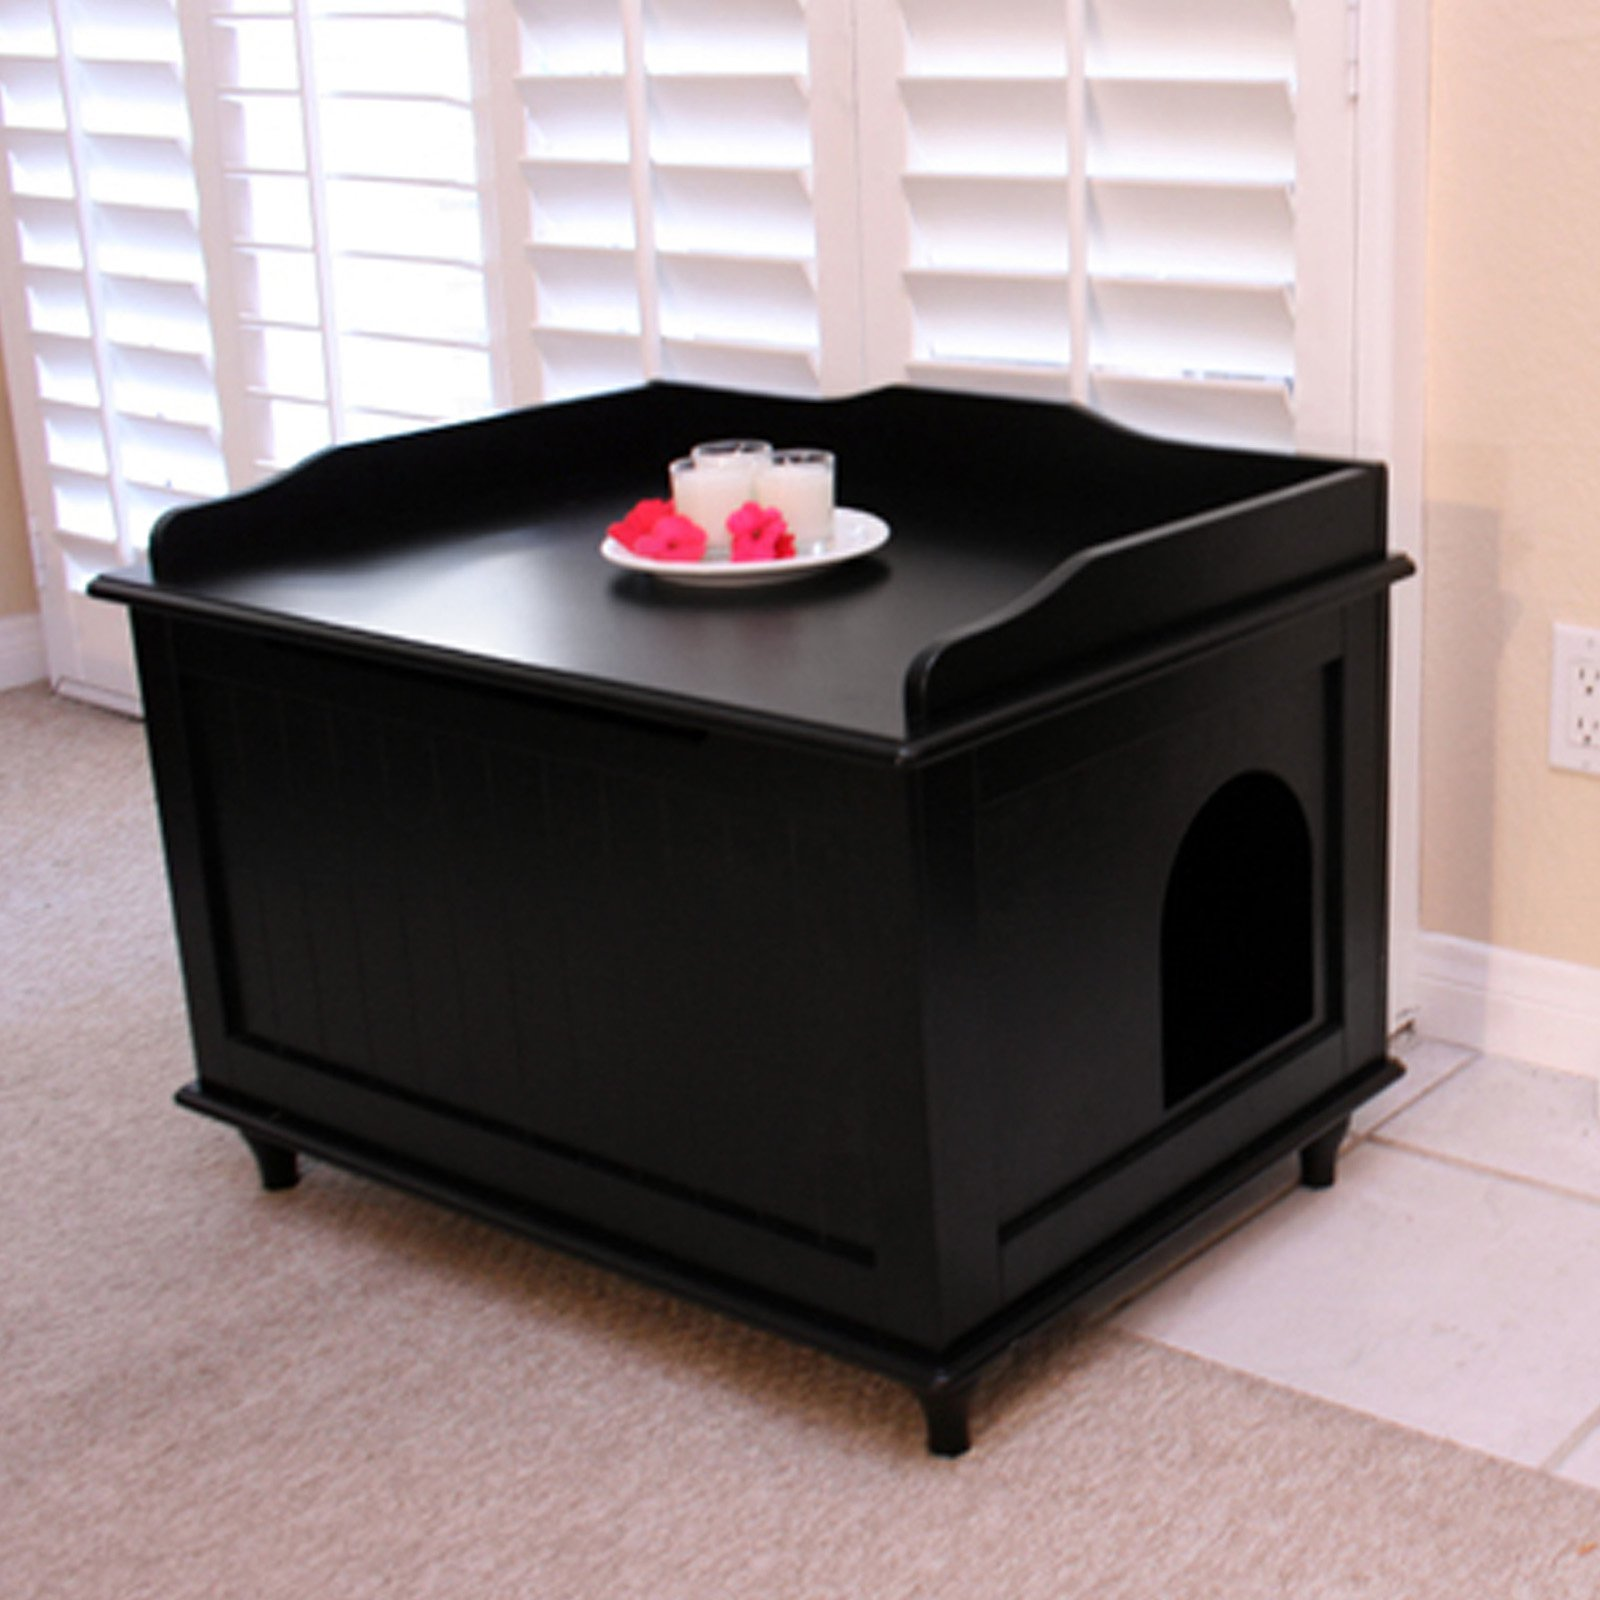 meow town mdf litter box. Designer Catbox Litter Box Enclosure Meow Town Mdf B